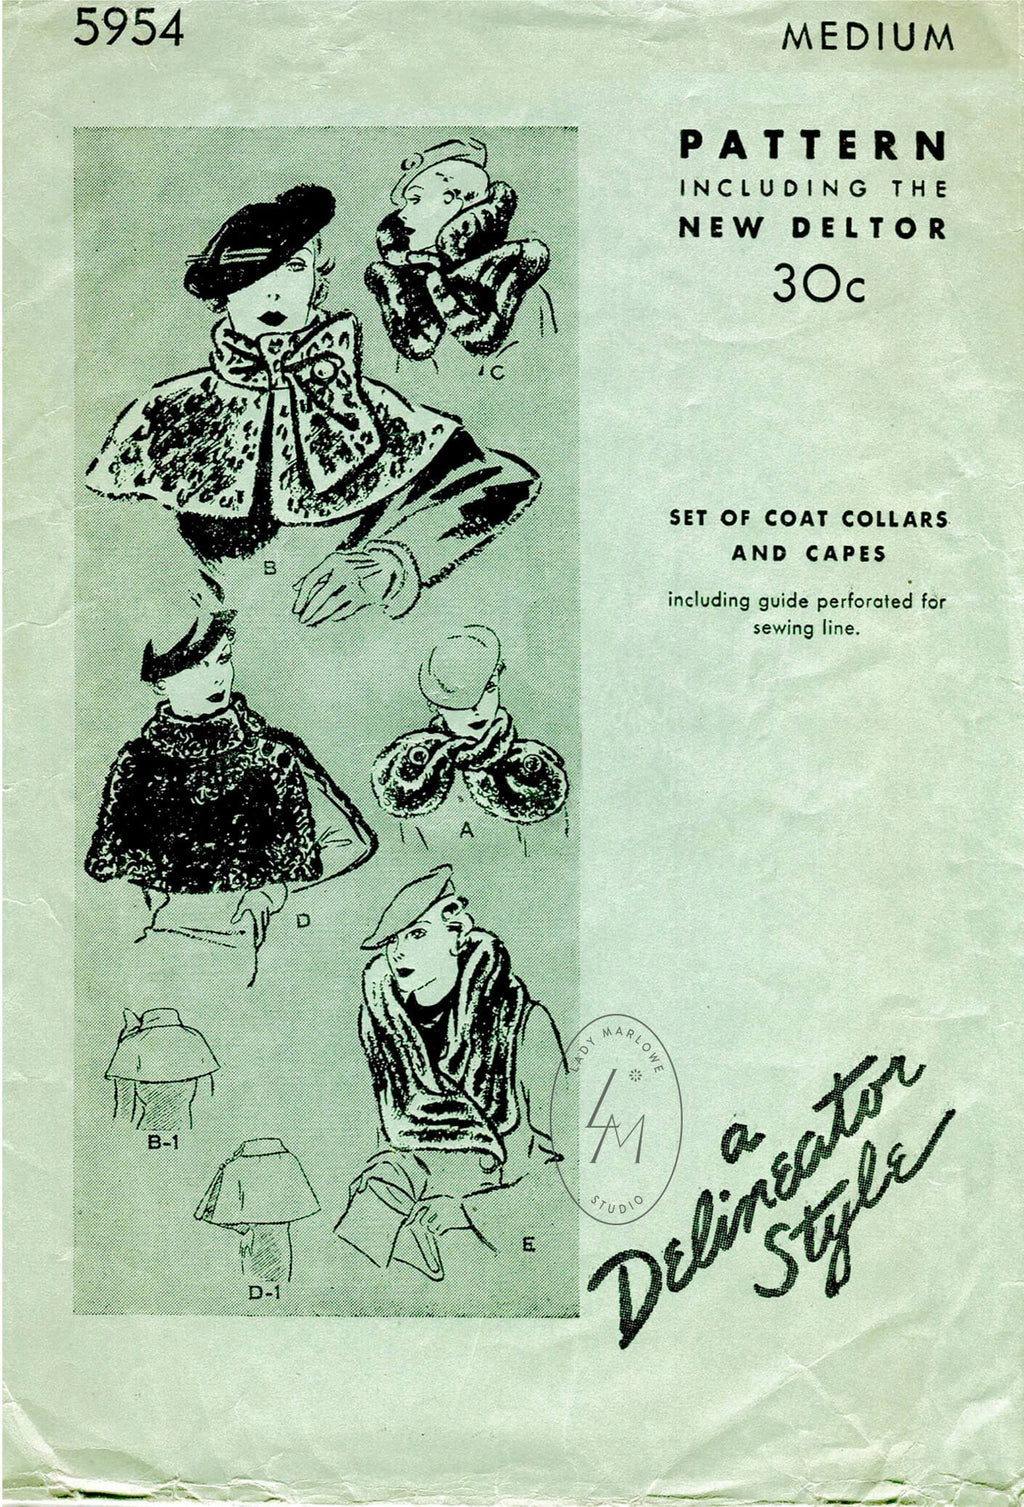 Butterick 5954 1930s vintage sewing pattern 1930 30s fur capes collars accessories